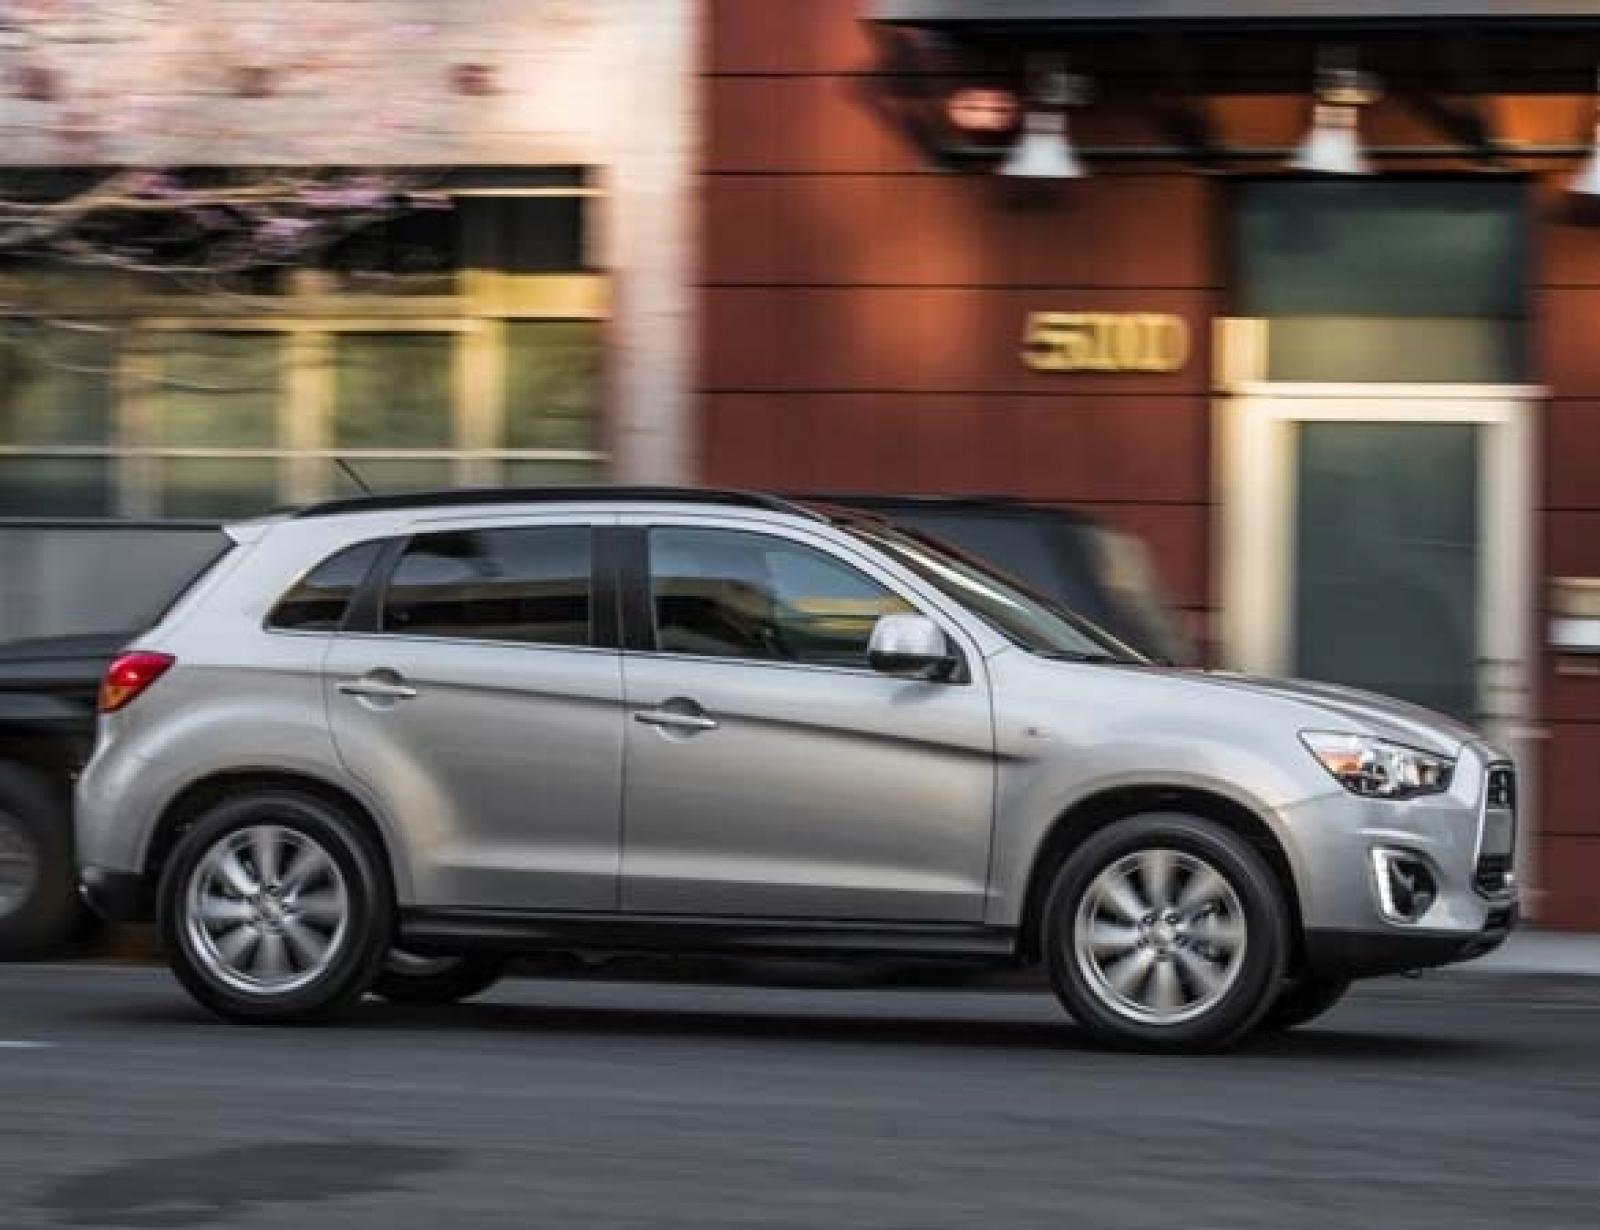 2015 Mitsubishi Outlander Sport - Information and photos